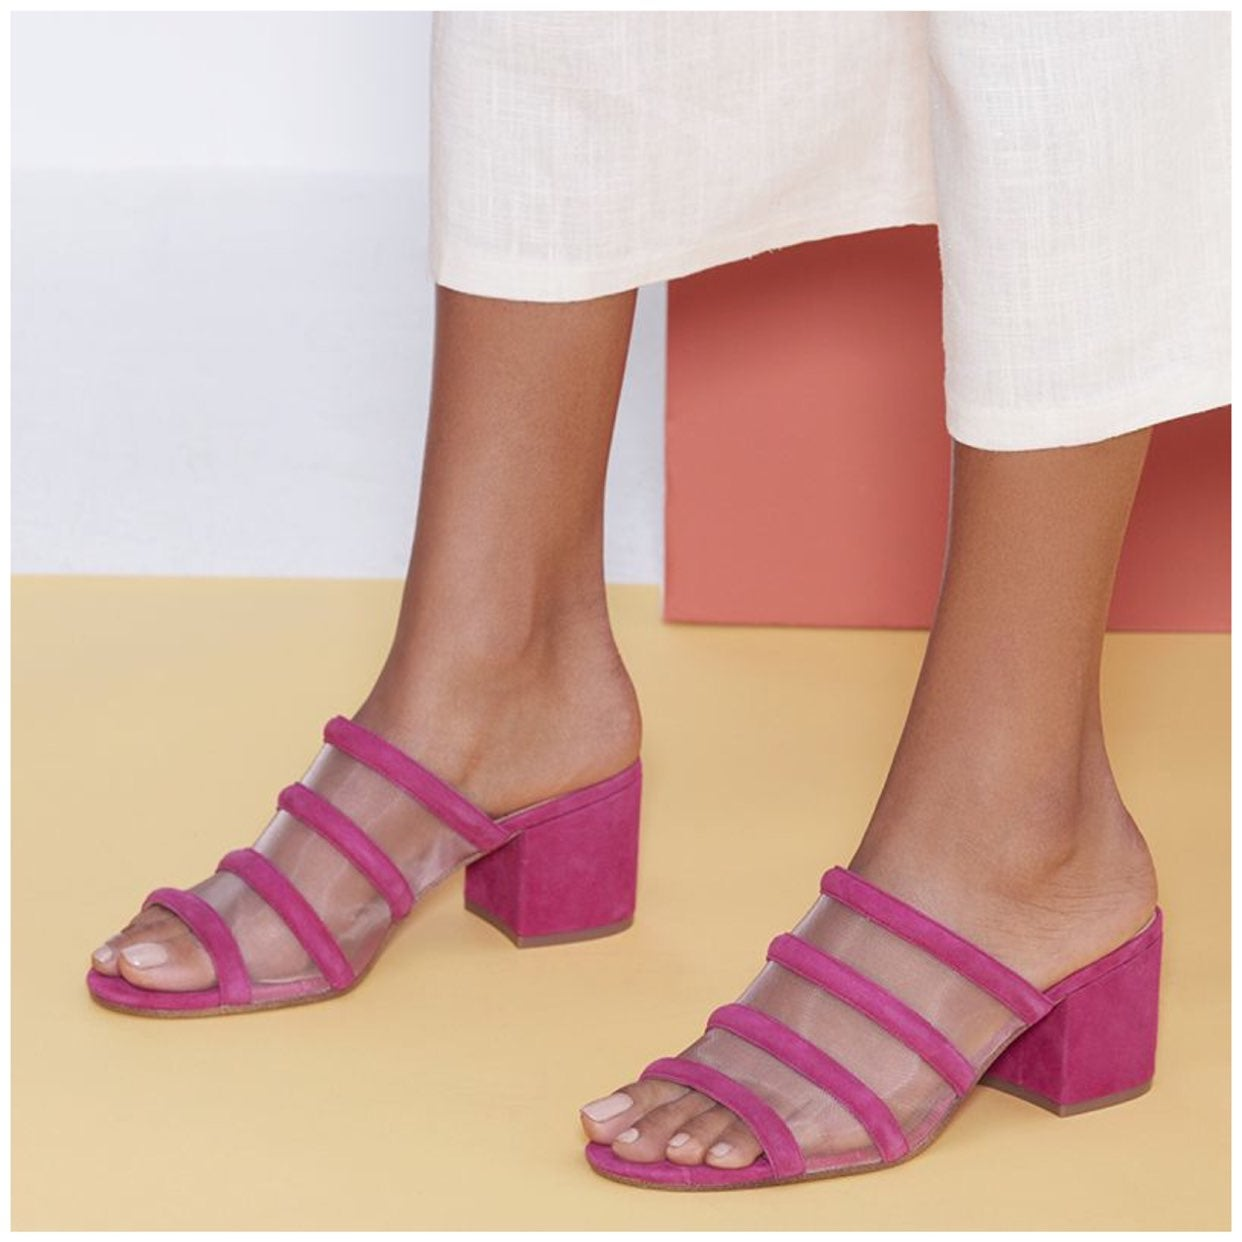 SOLE SOCIETY Henna Mules Sandals Heels